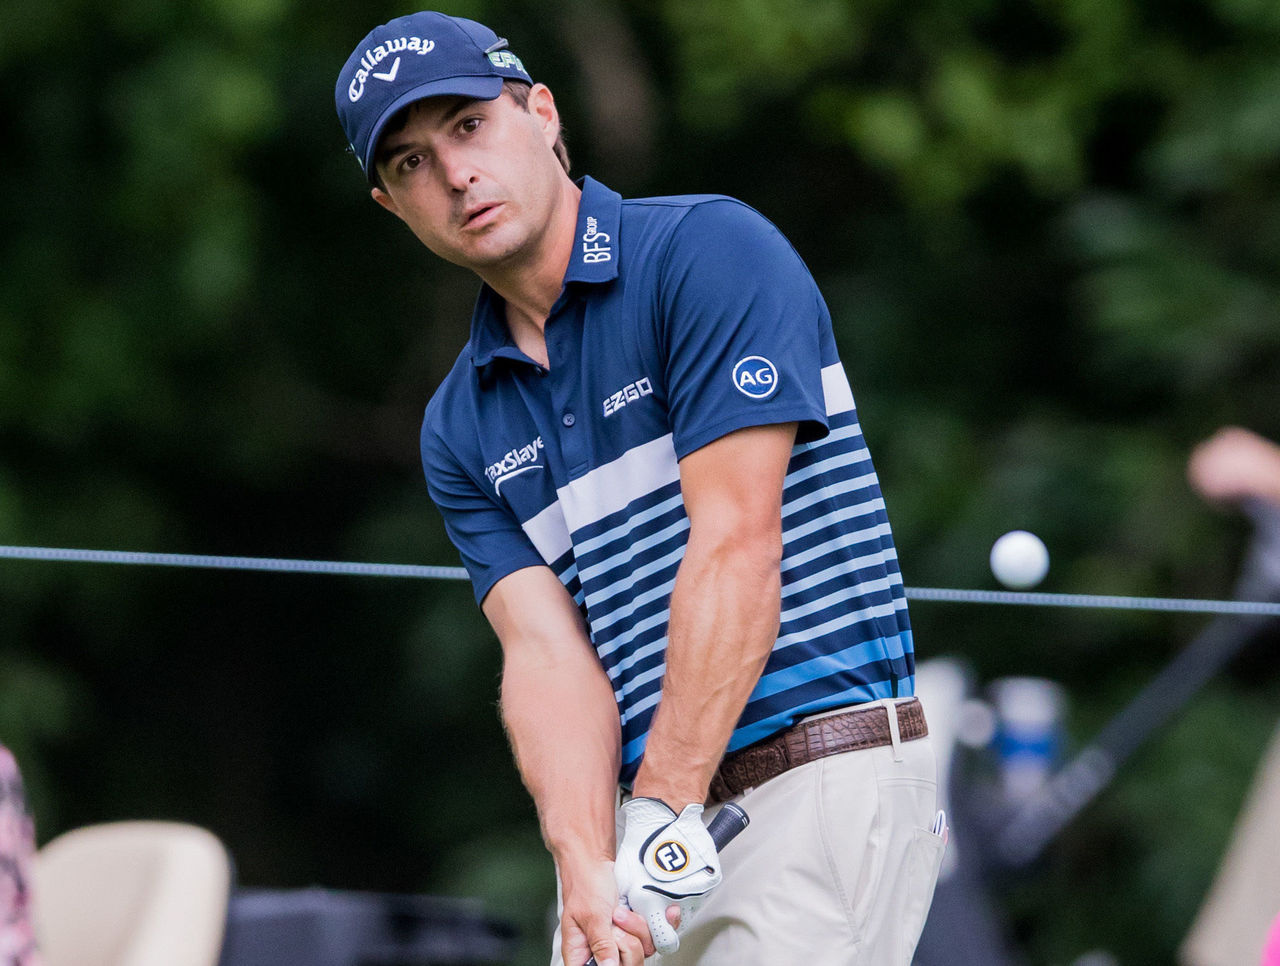 Cropped 2017 04 30t162437z 692445580 nocid rtrmadp 3 pga zurich classic of new orleans final round